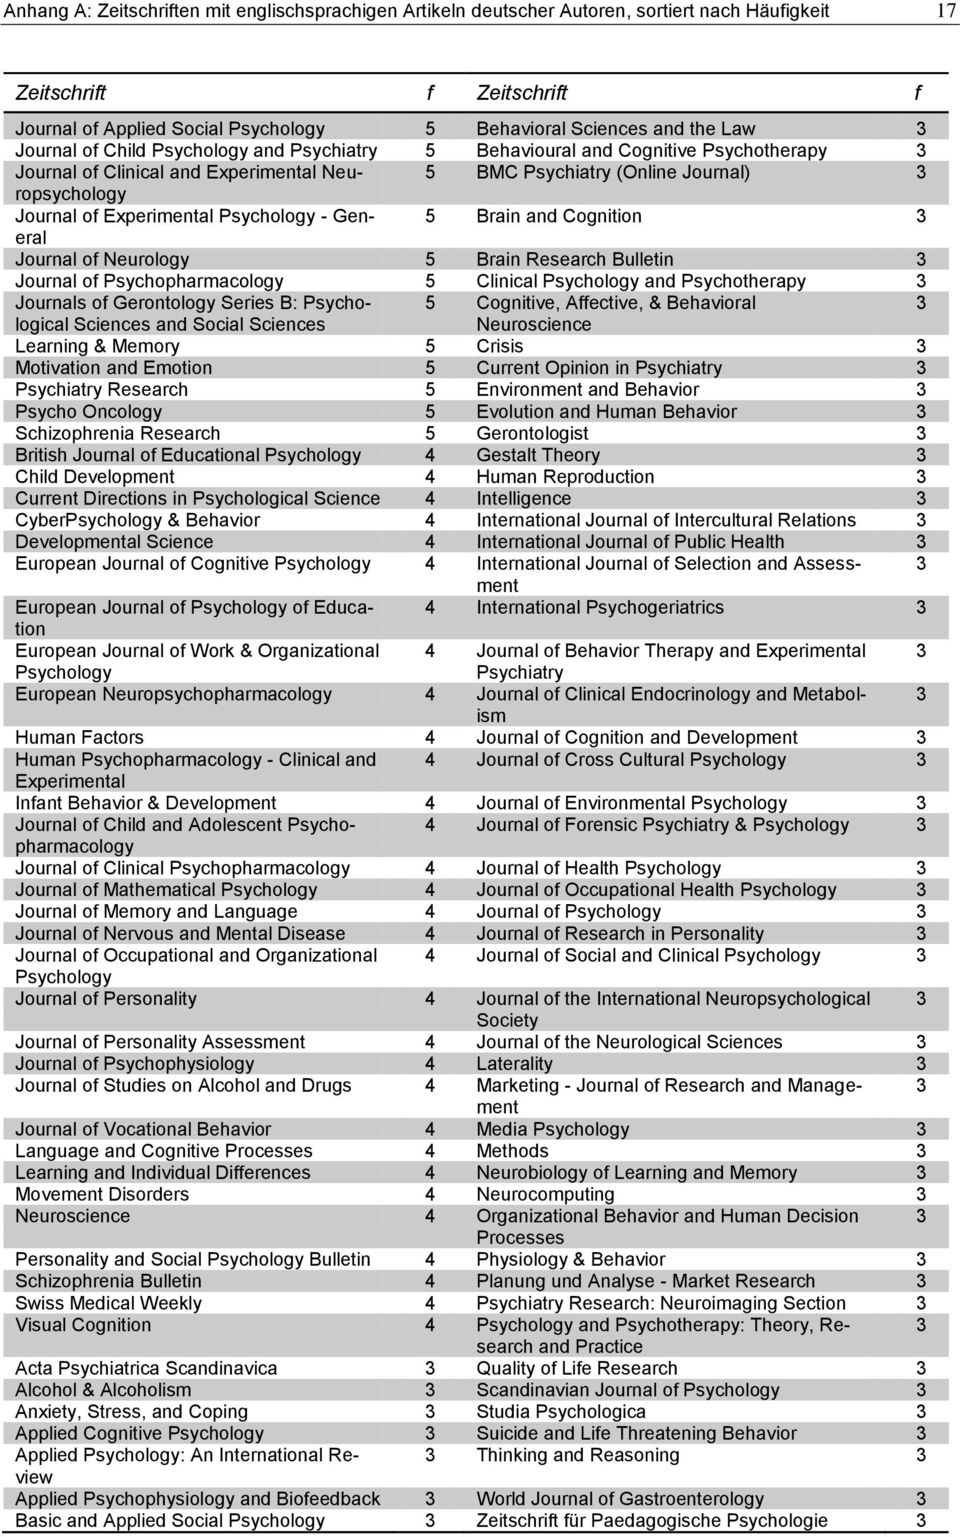 Experimental Psychology - General 5 Brain and Cognition 3 Journal of Neurology 5 Brain Research Bulletin 3 Journal of Psychopharmacology 5 Clinical Psychology and Psychotherapy 3 Journals of